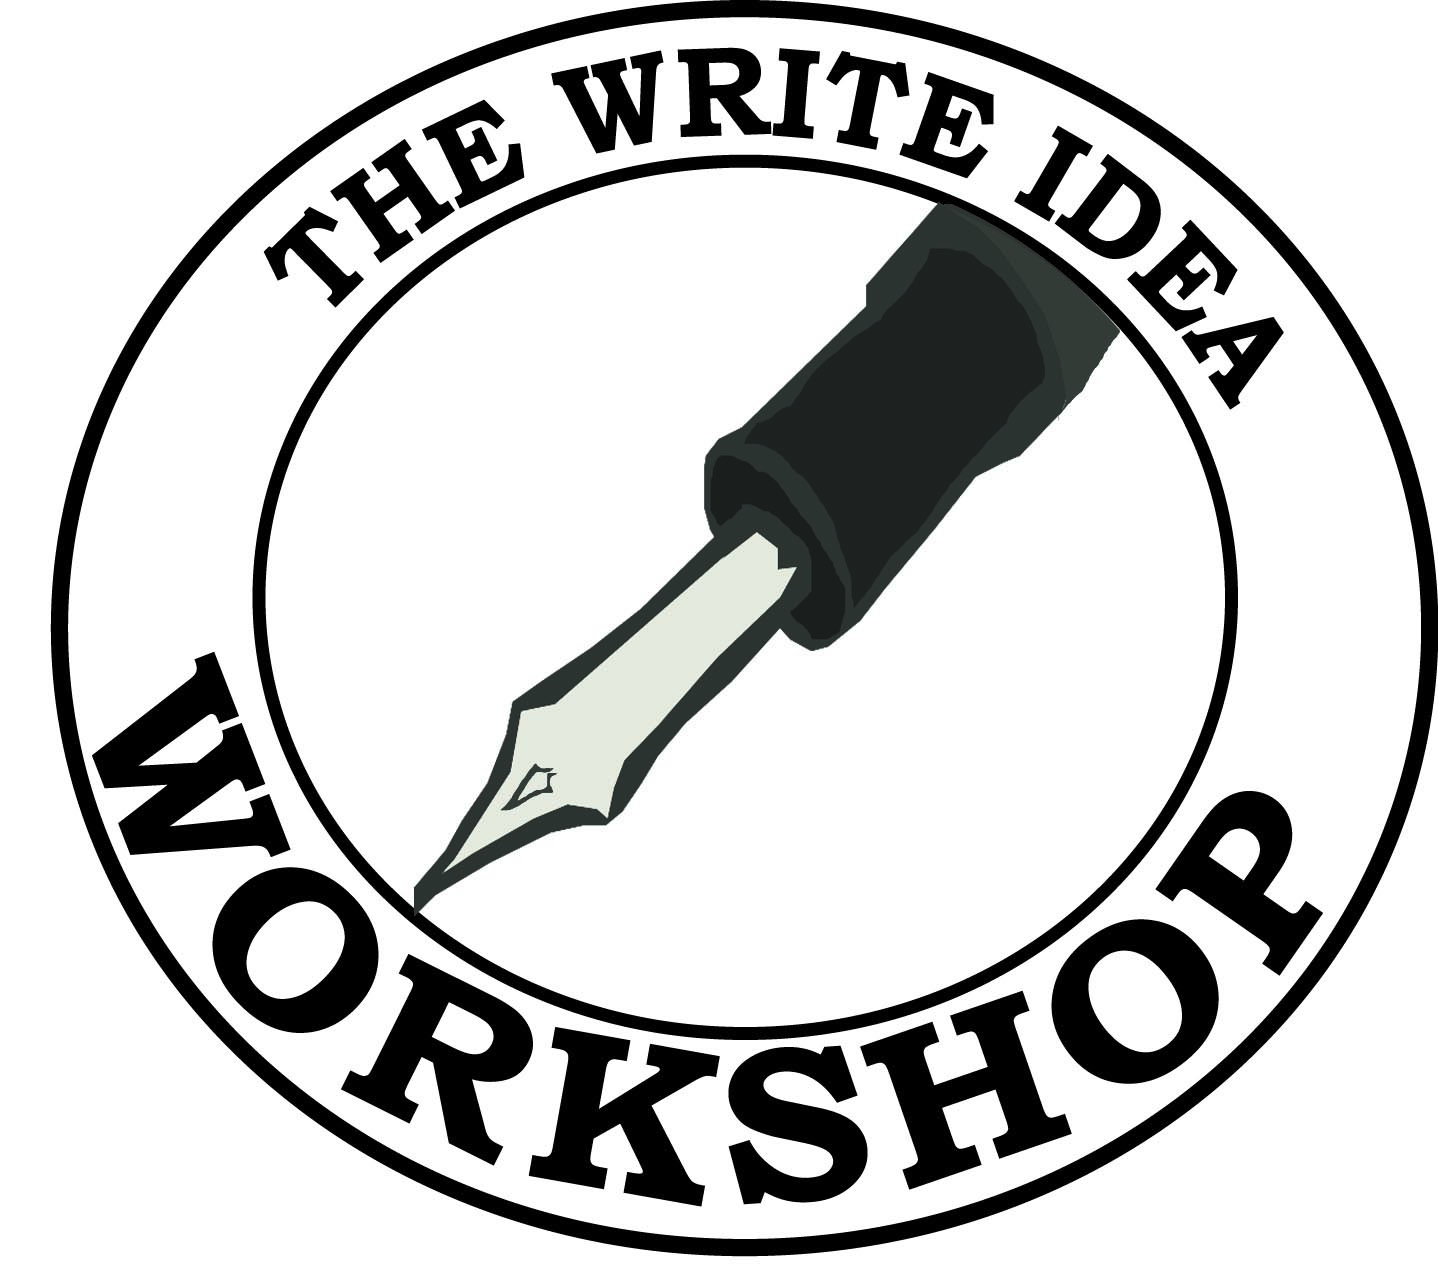 046 - The Write Idea Workshop - Jac Attack